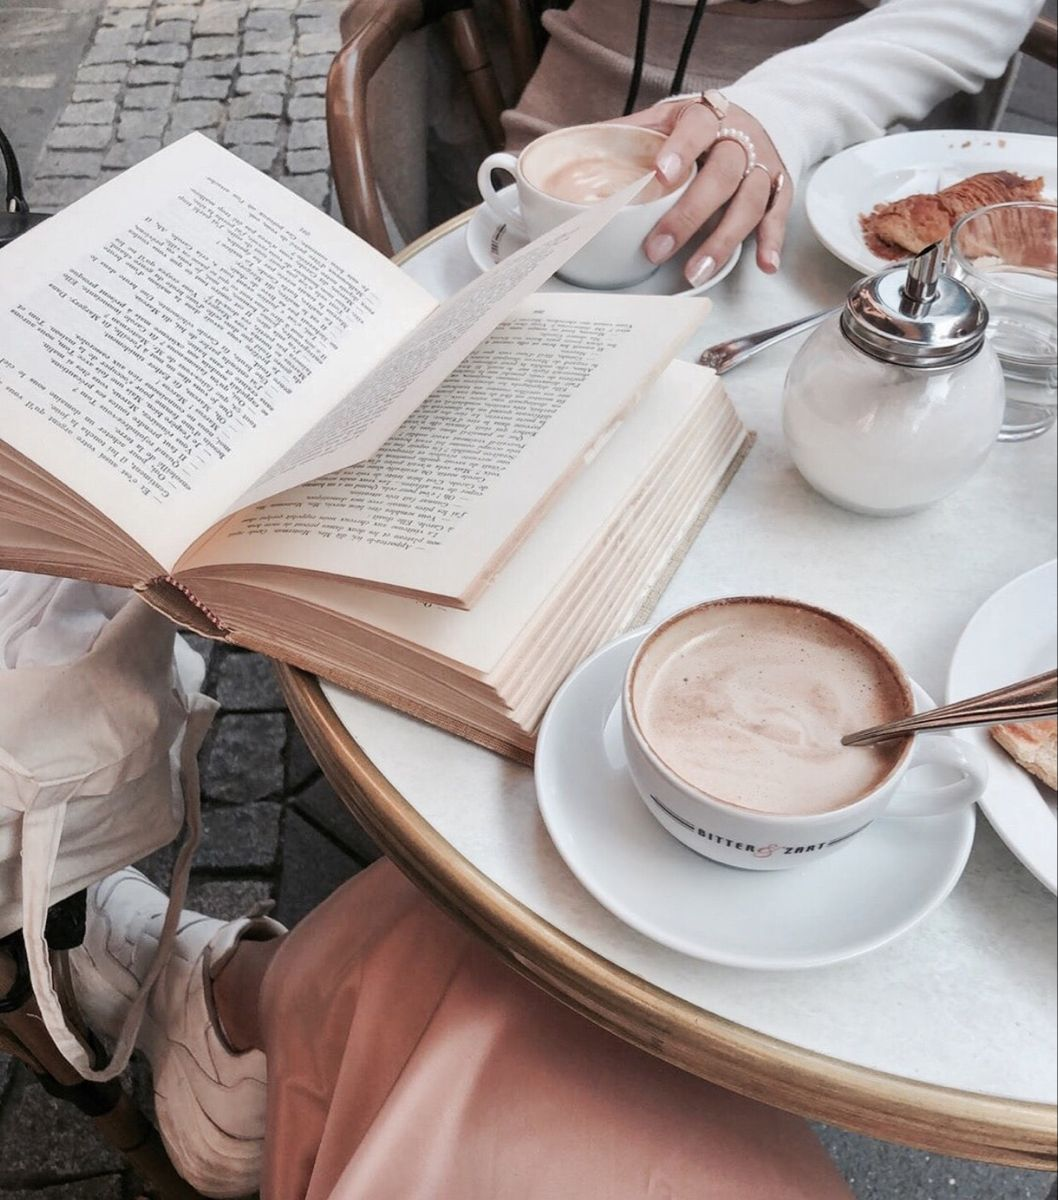 𝒮𝒶𝓇𝒶𝒽𝒦𝑒𝓊𝓀𝑒𝓁𝒶𝒶𝓇 in 2020 Food, Coffee and books, Coffee